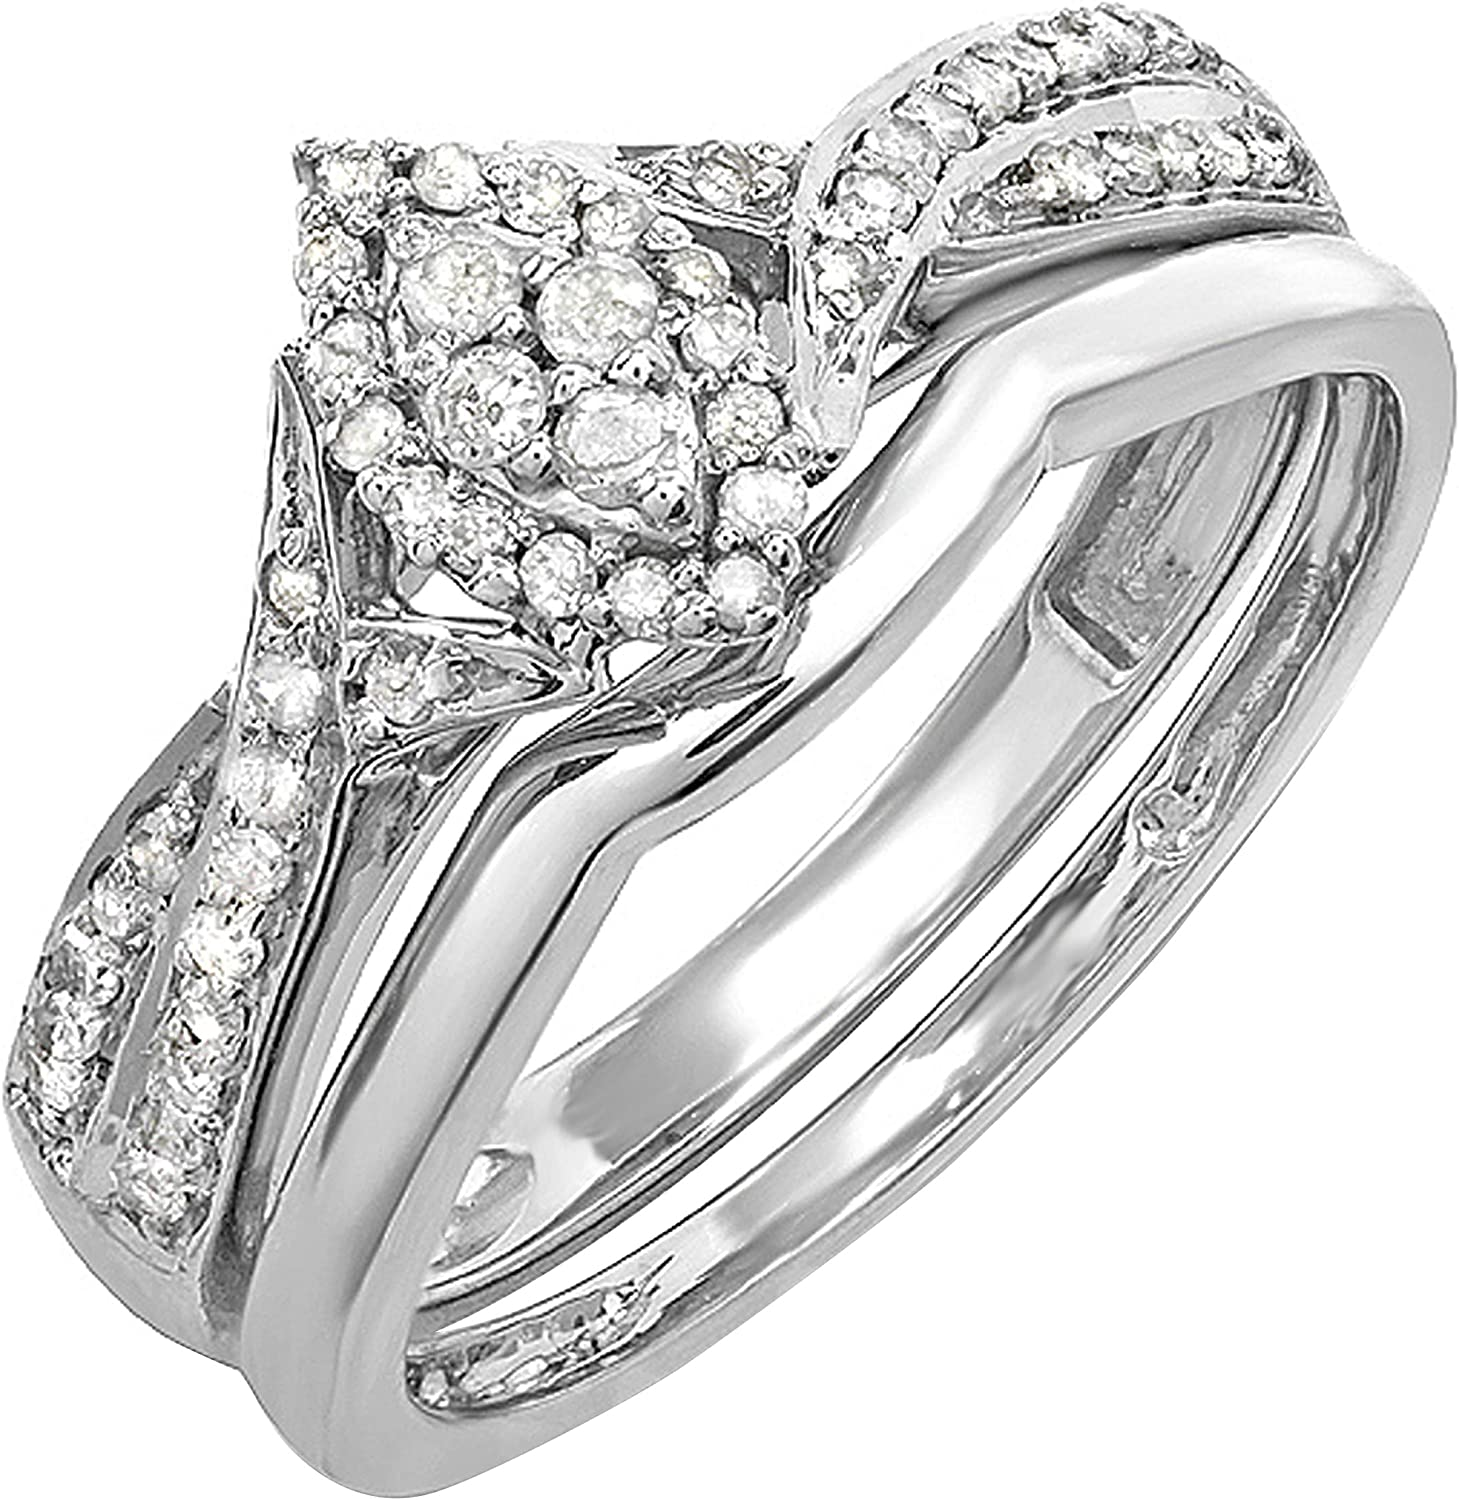 Dazzlingrock Collection 0.33 Carat (ctw) Round White Diamond Marquise Shape Bridal Engagement Ring Set 1/3 CT, Sterling Silver : Clothing, Shoes & Jewelry